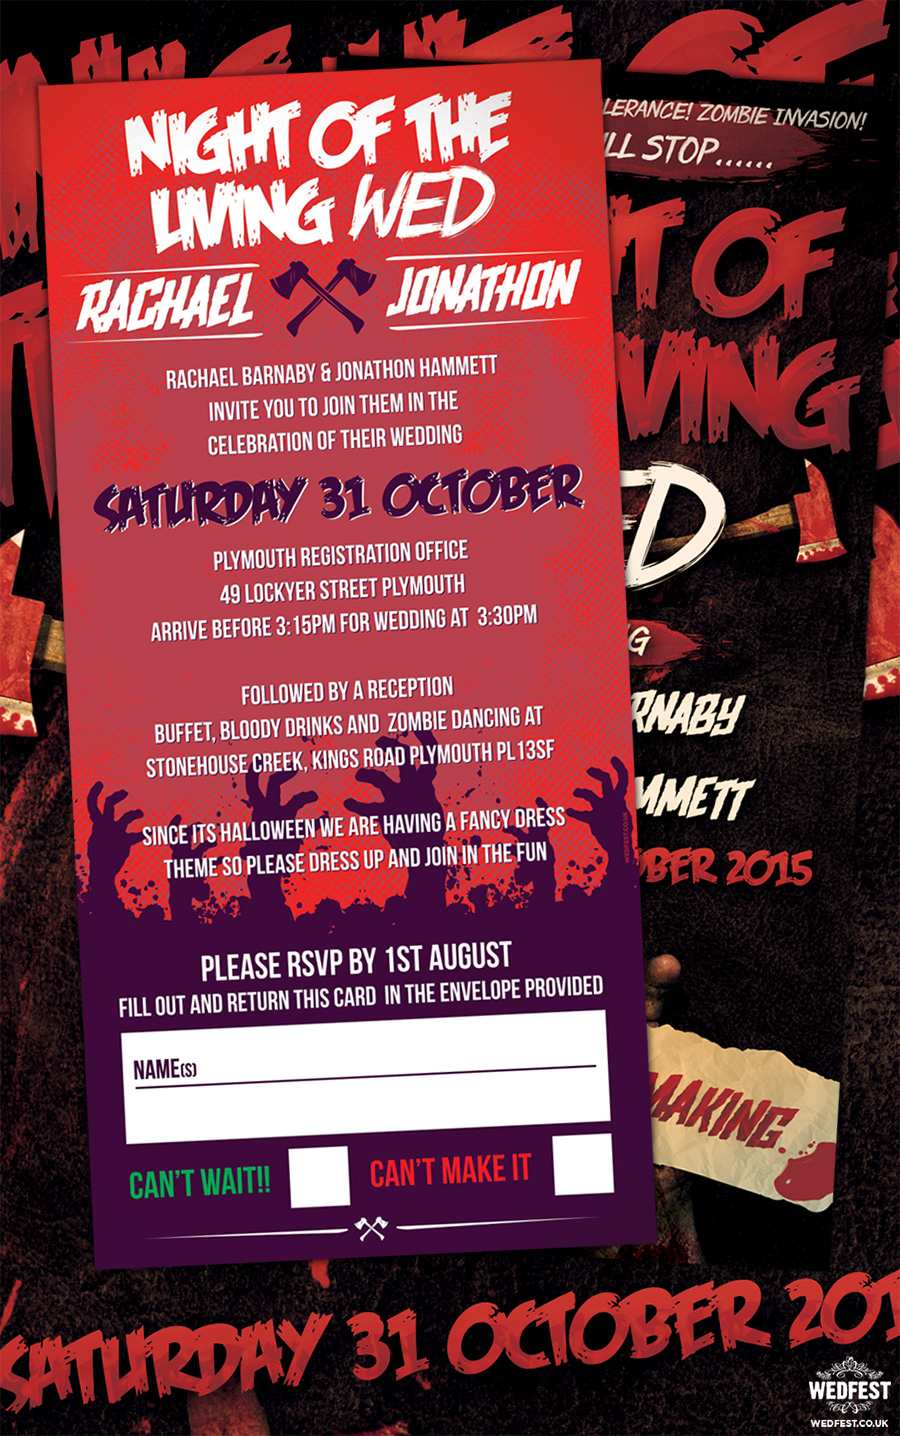 Halloween Wedding Invitations | WEDFEST